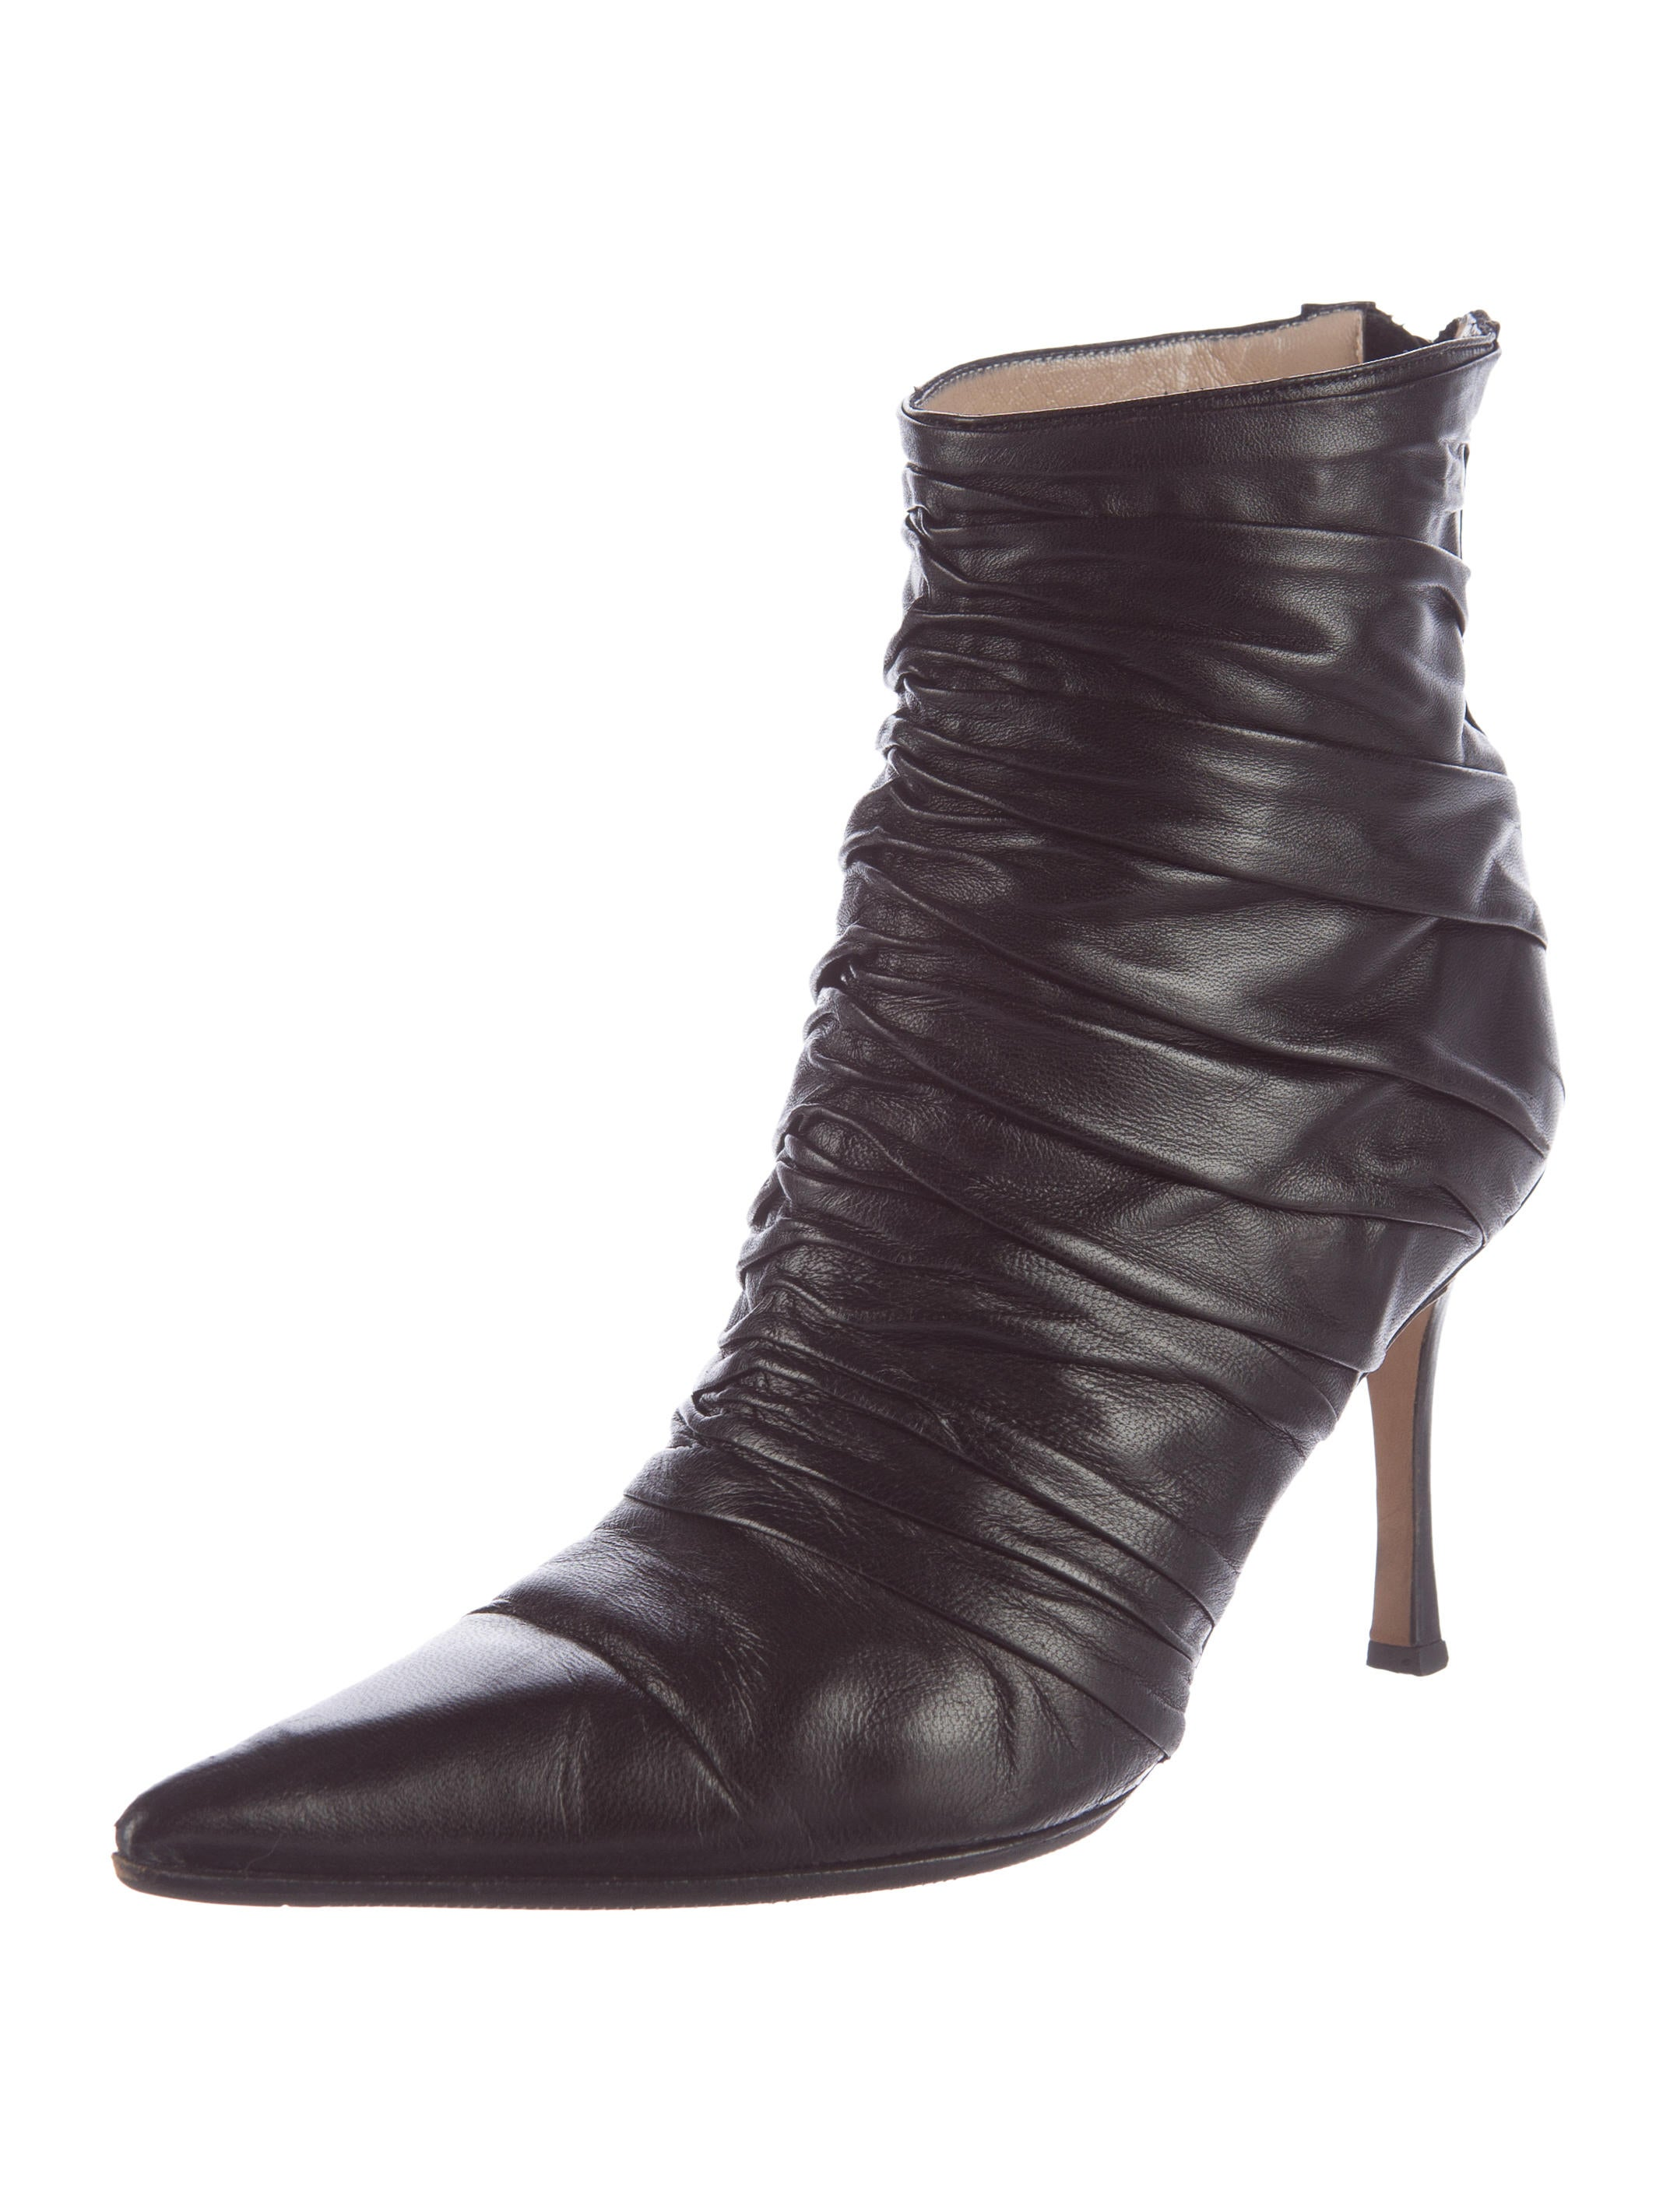 Manolo Blahnik Ruched Leather Ankle Boots - Shoes ...